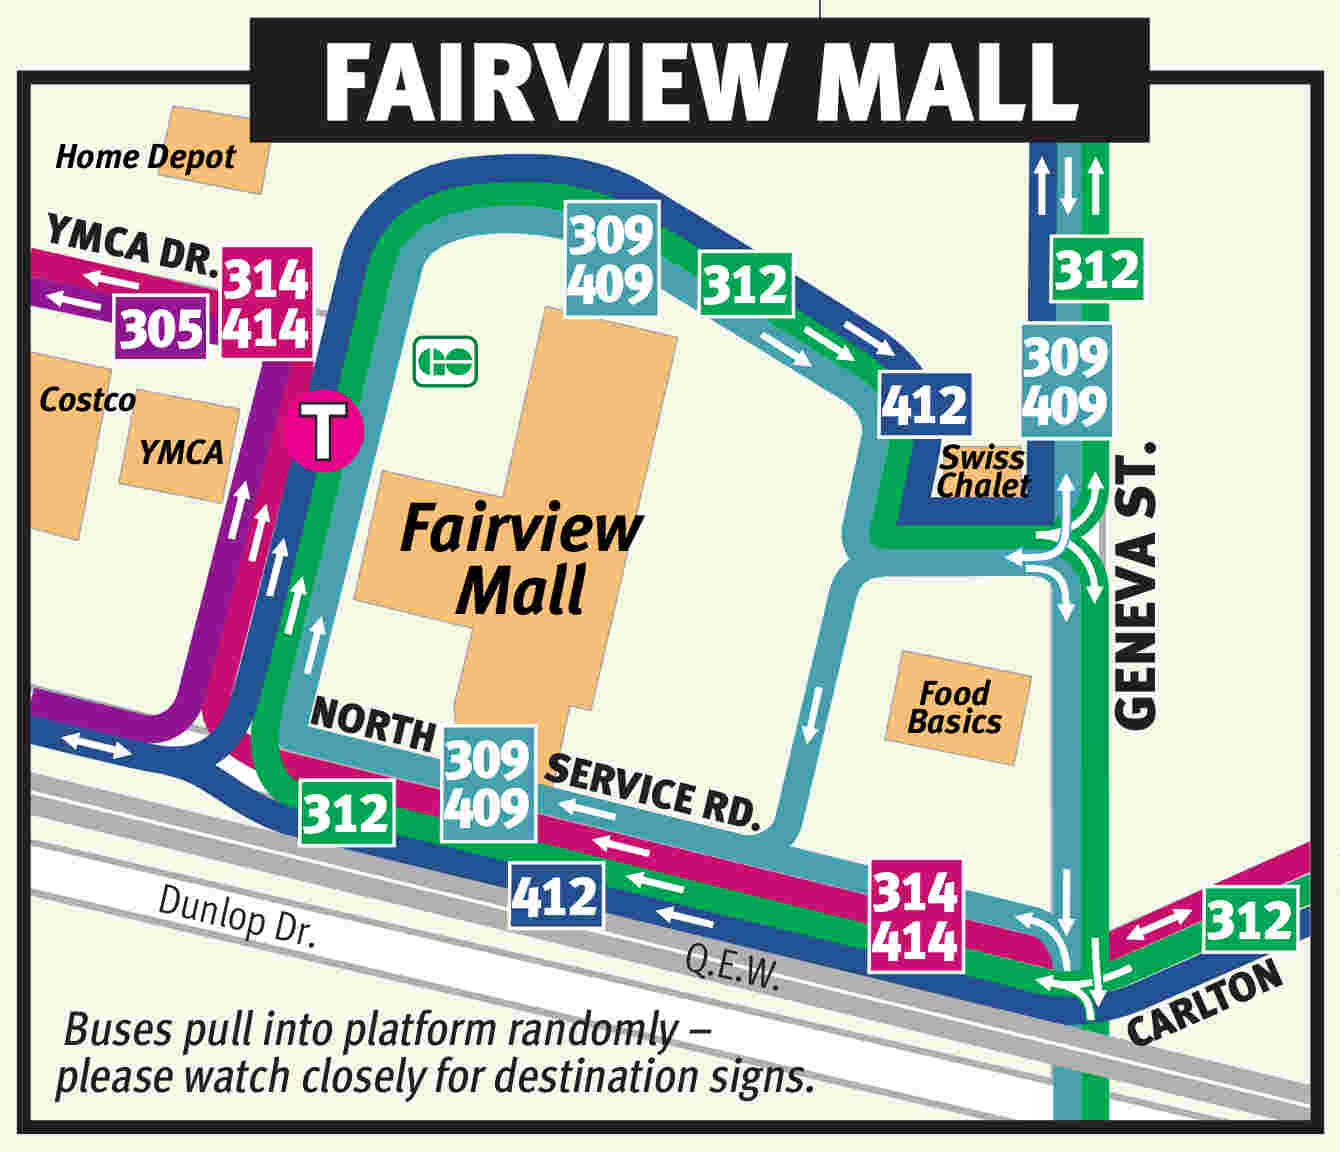 A map of the Fairview Mall.